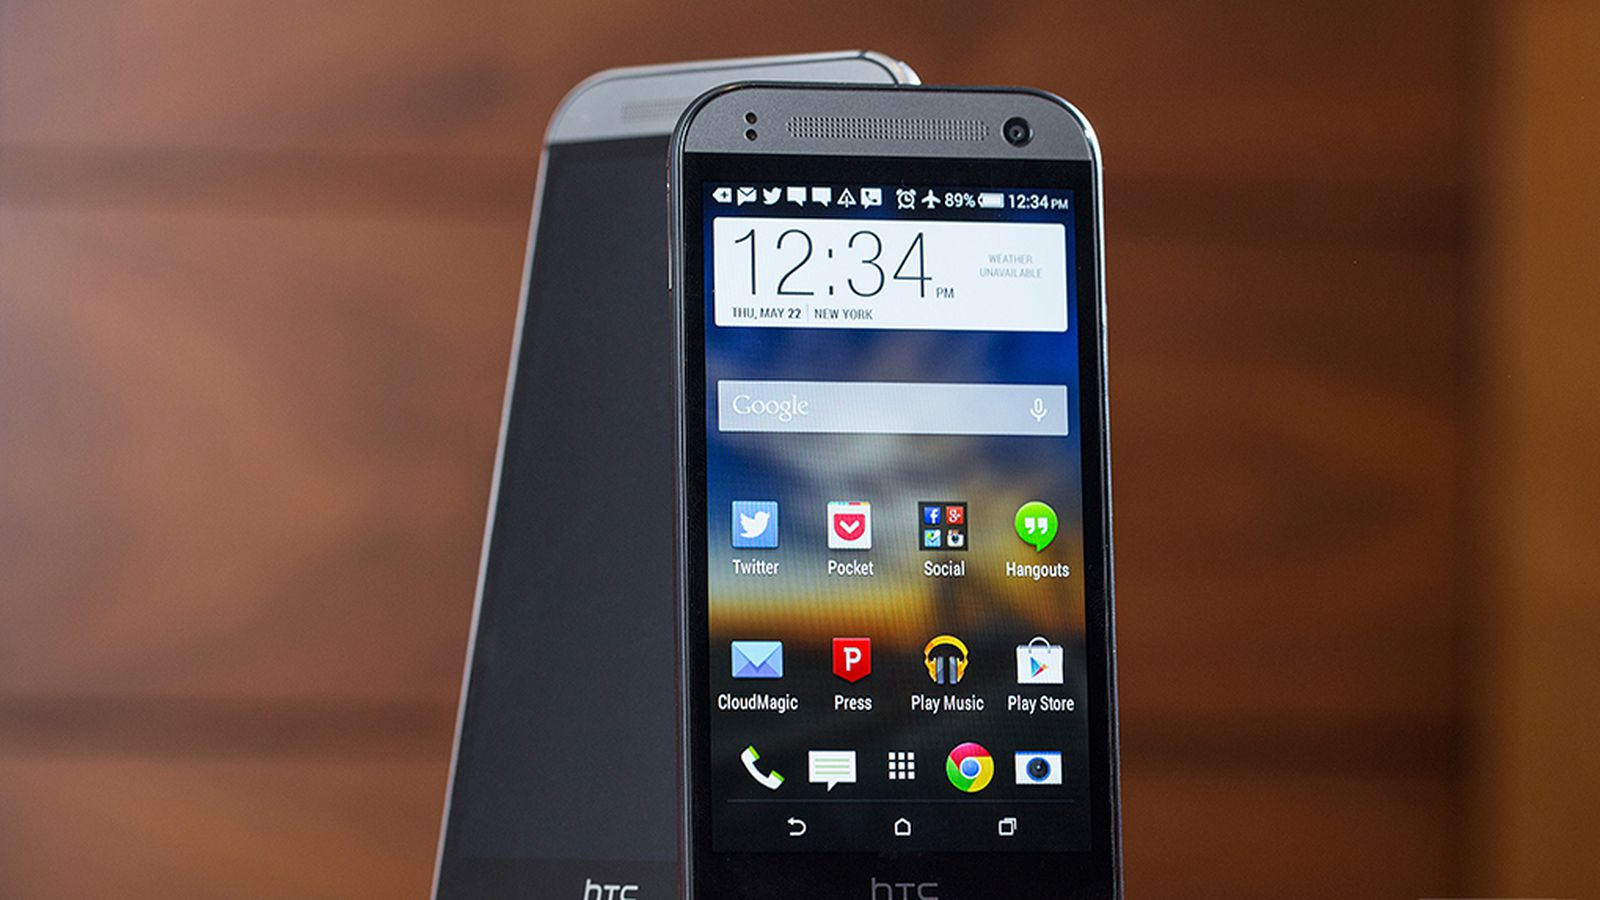 htc one mini 2 review average by design the verge. Black Bedroom Furniture Sets. Home Design Ideas